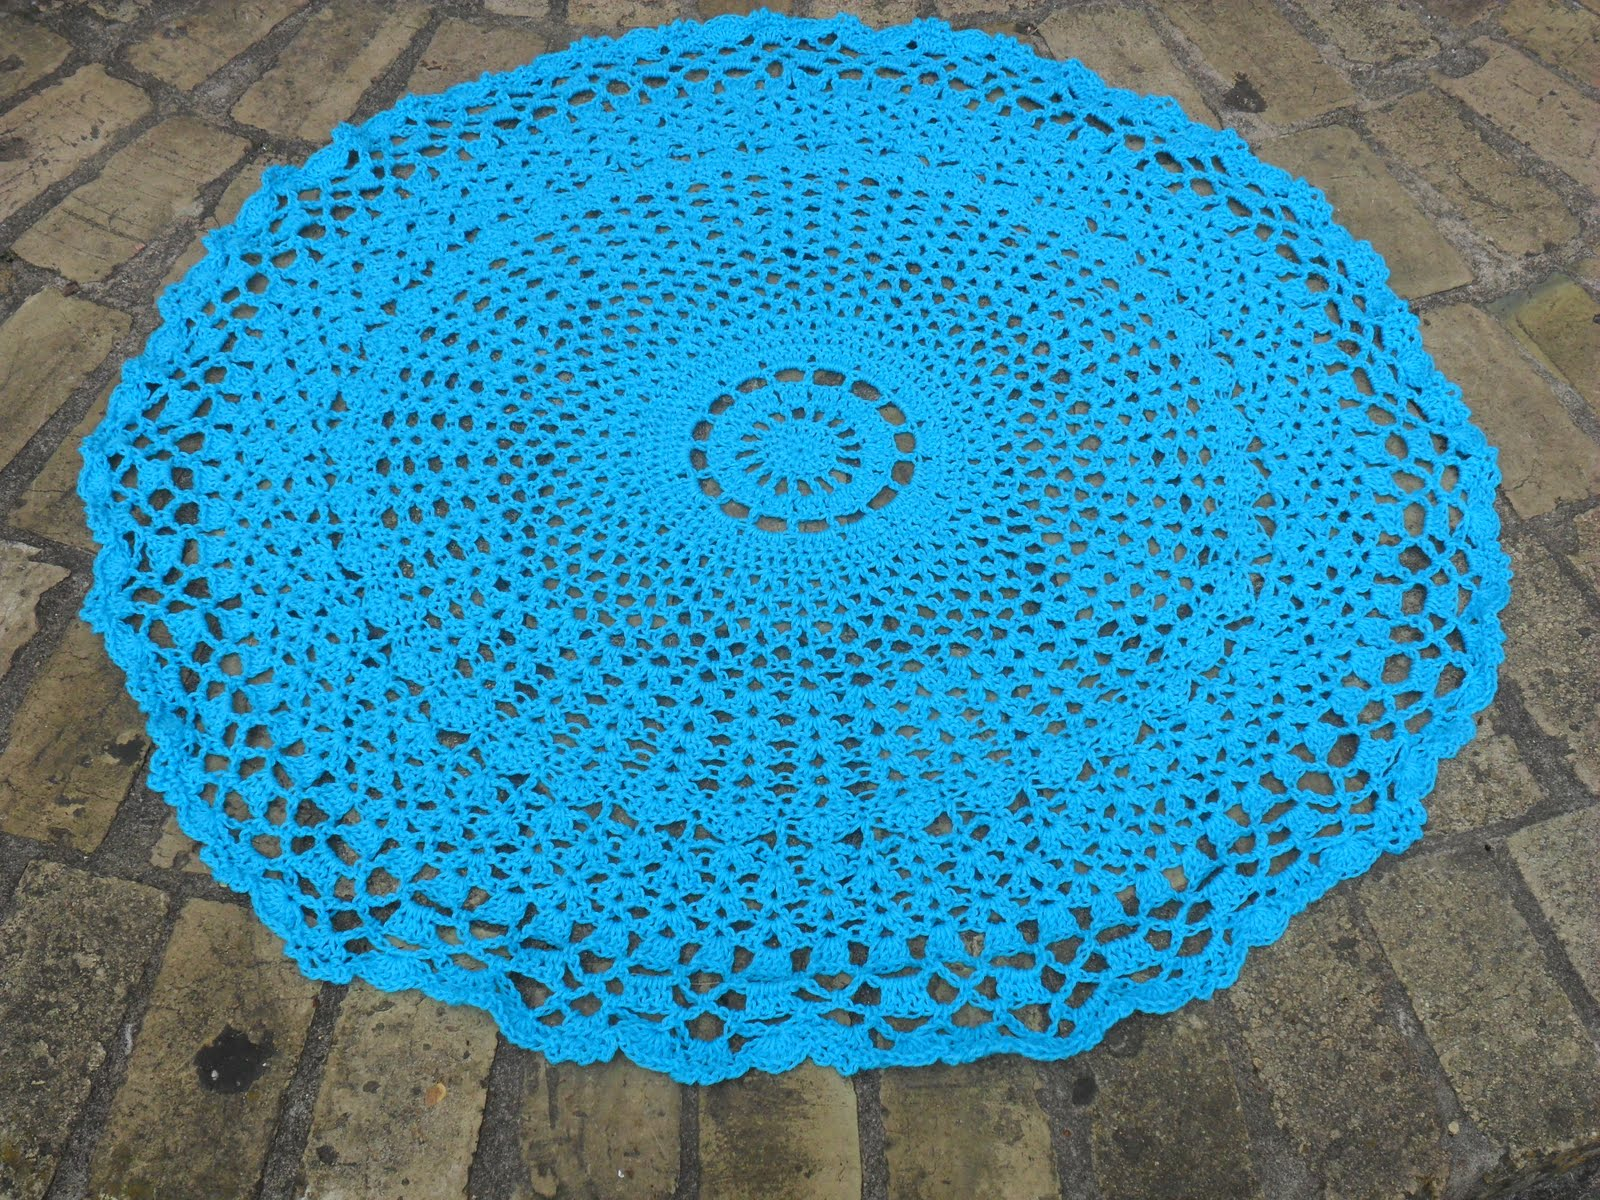 Knitting Patterns For Circular Shawls : Valis Crochet Moment: New Pattern for Valis Circular Crochet Shawl